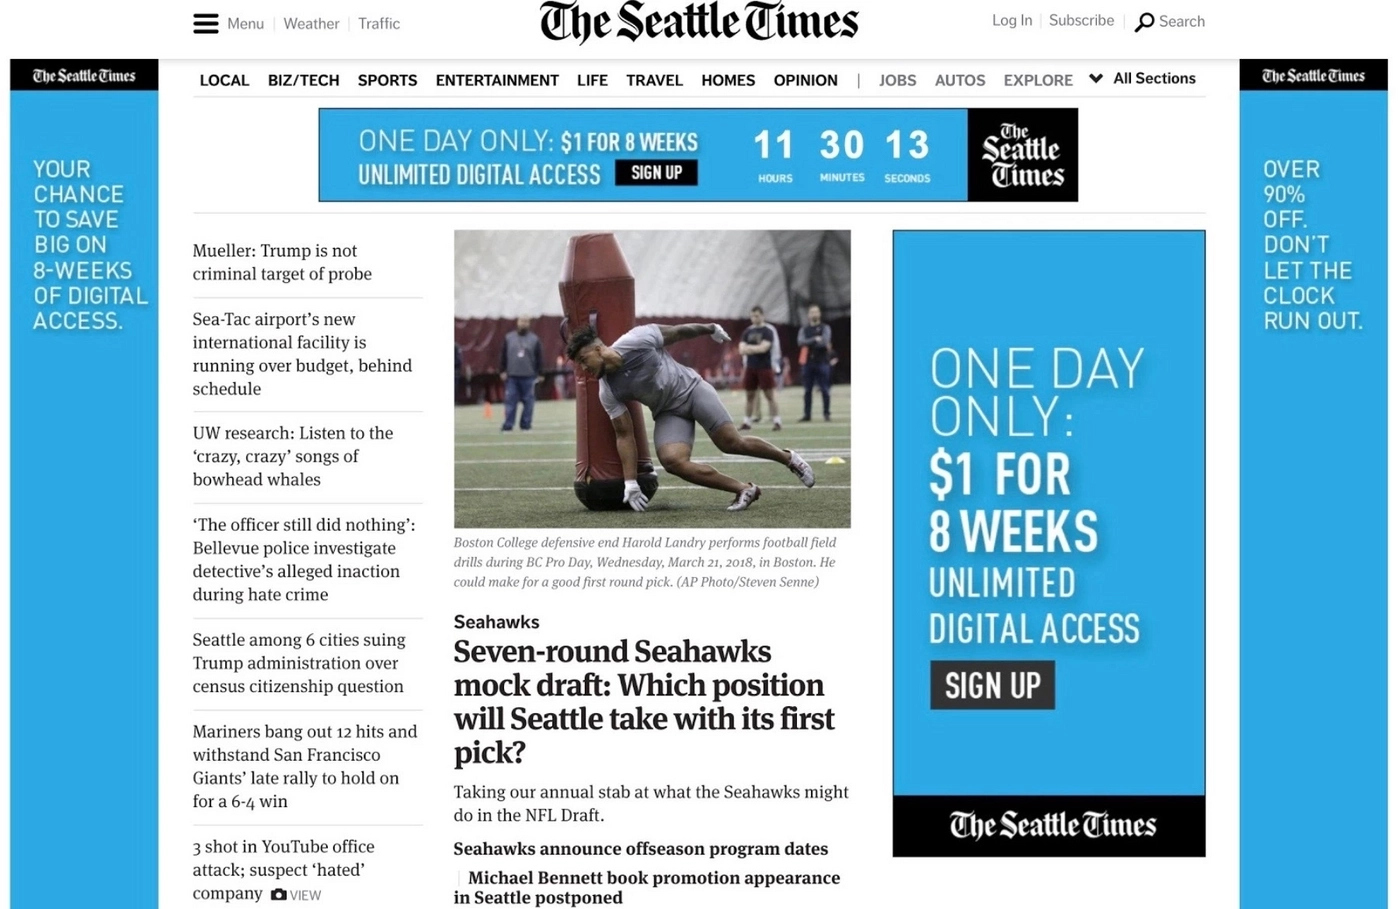 Seattle Times uses their own ads and media kit